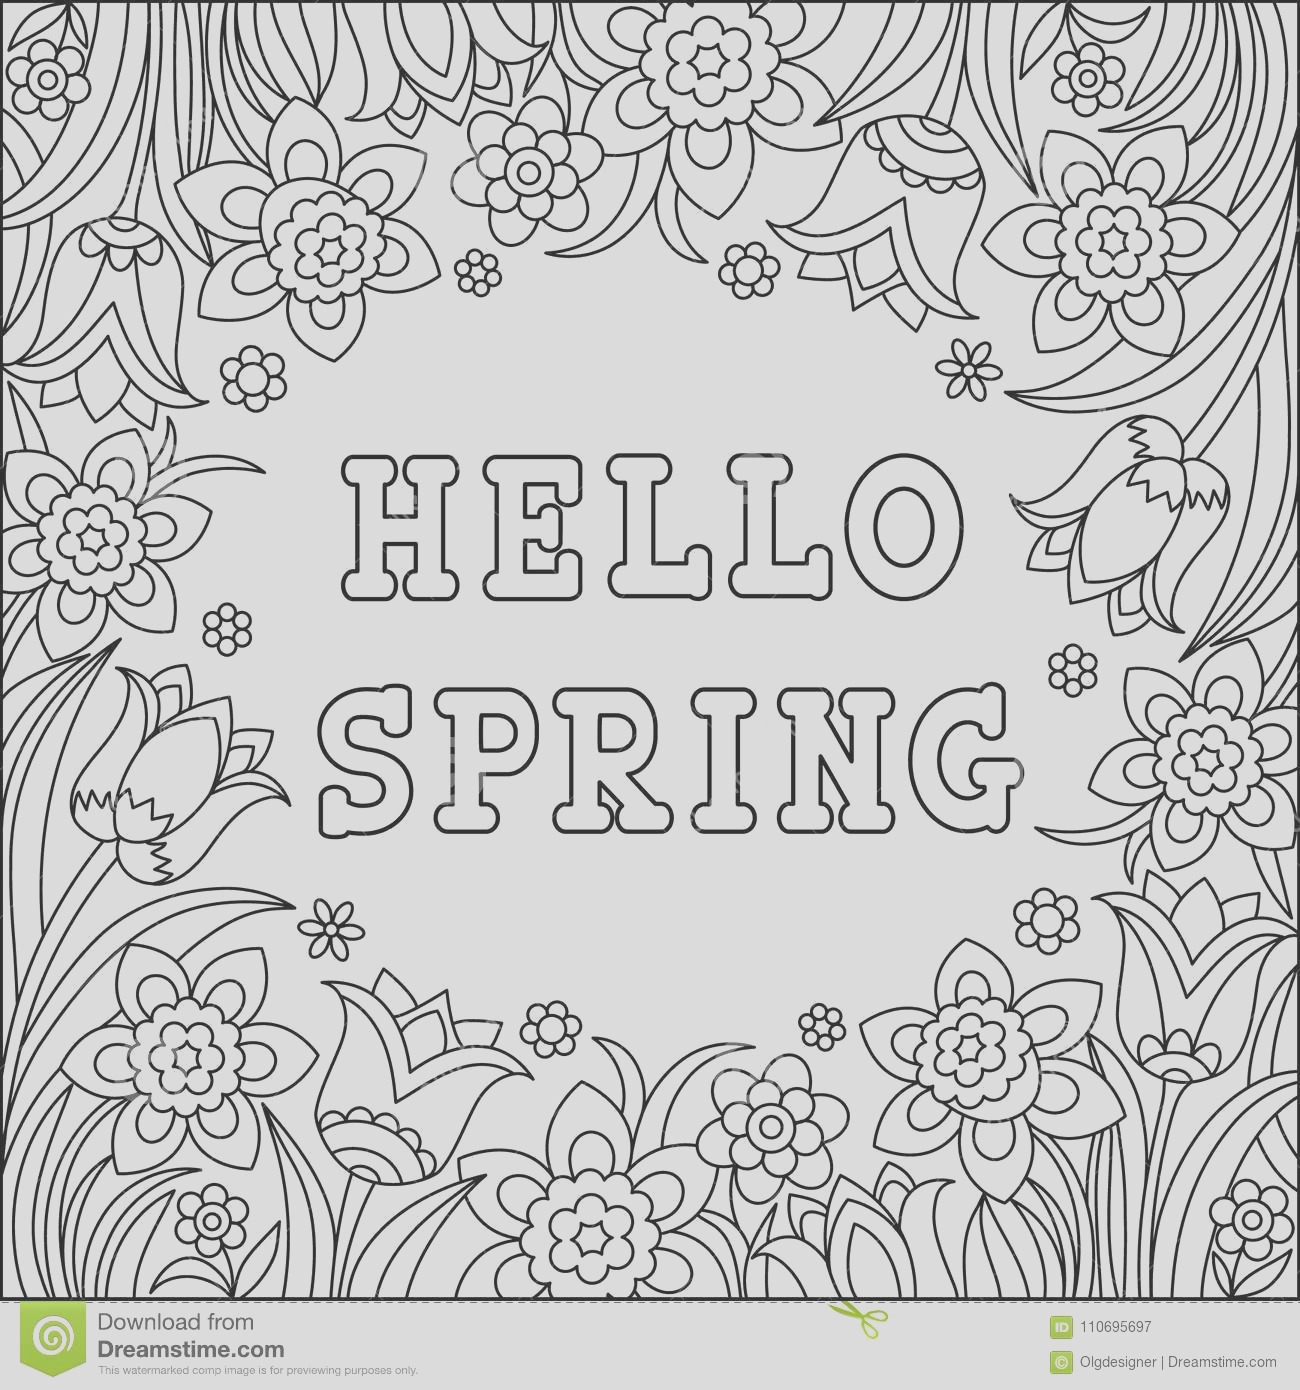 hello spring coloring page greeting card beautiful graphical flowers time background black white vector illustration image